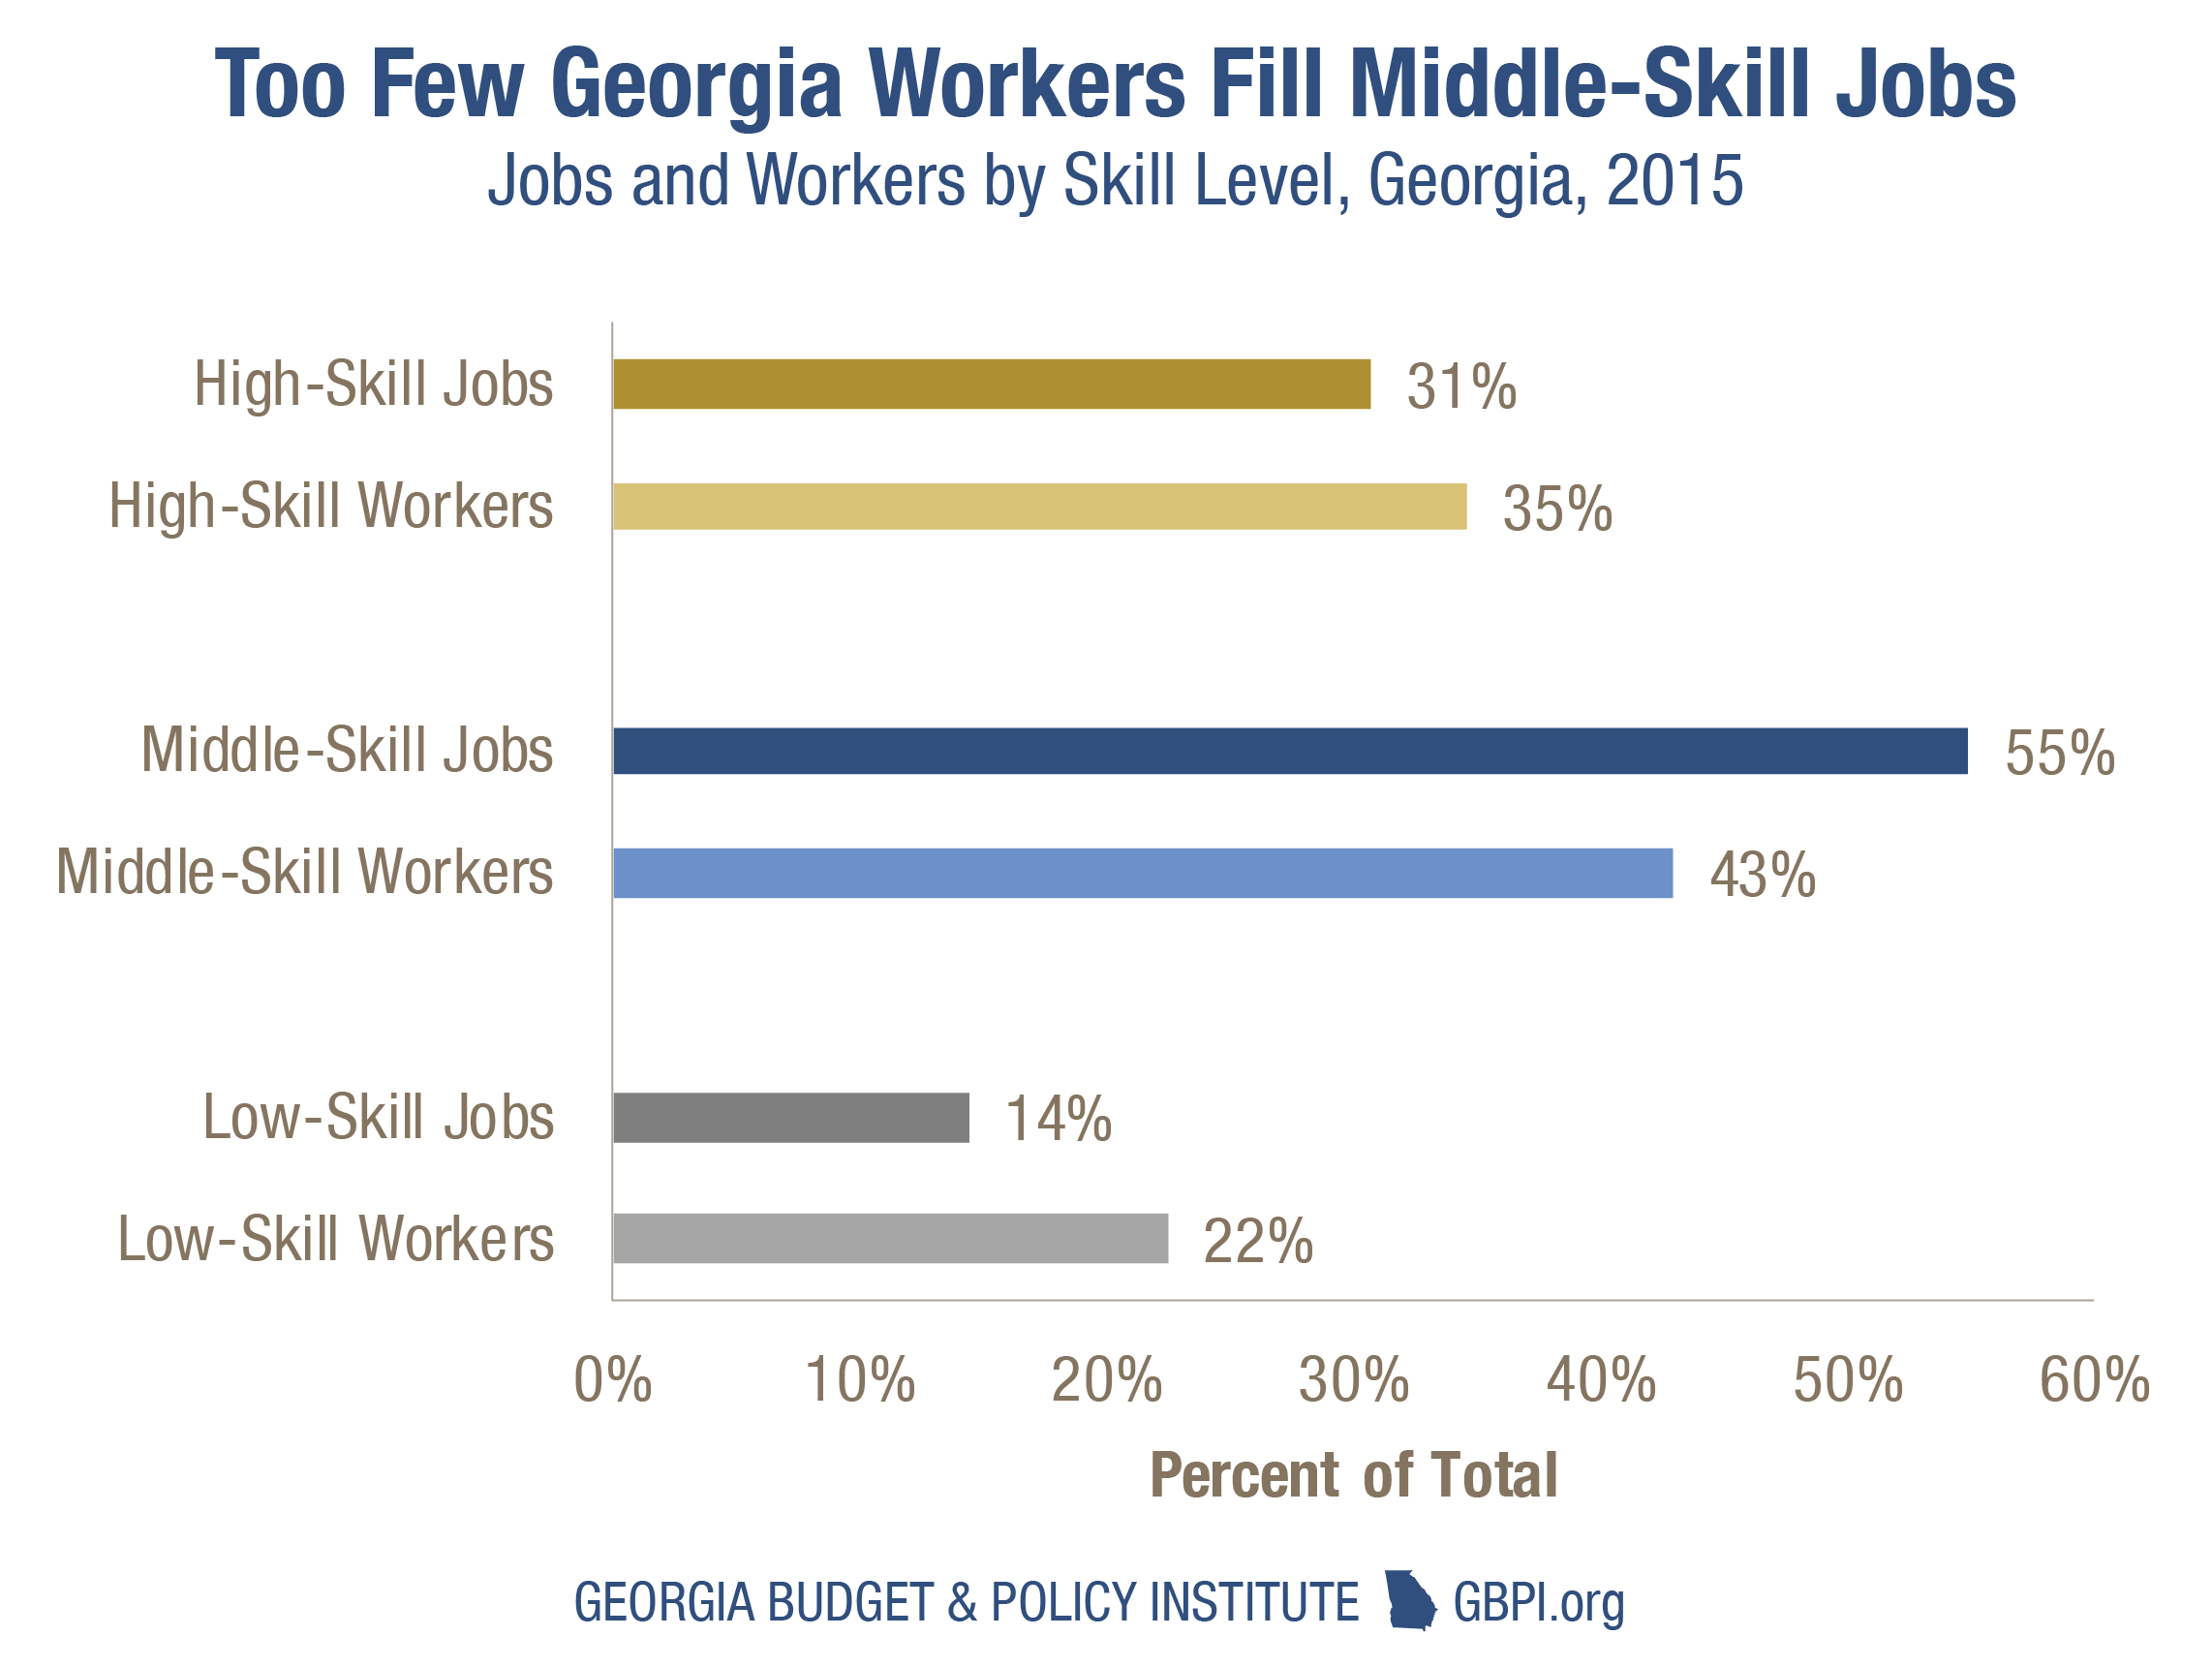 Boost georgias workforce with affordable child care for student source national skills coalition analysis of bureau of labor statistics occupational employment statistics by state may 2015 and us census bureau xflitez Choice Image